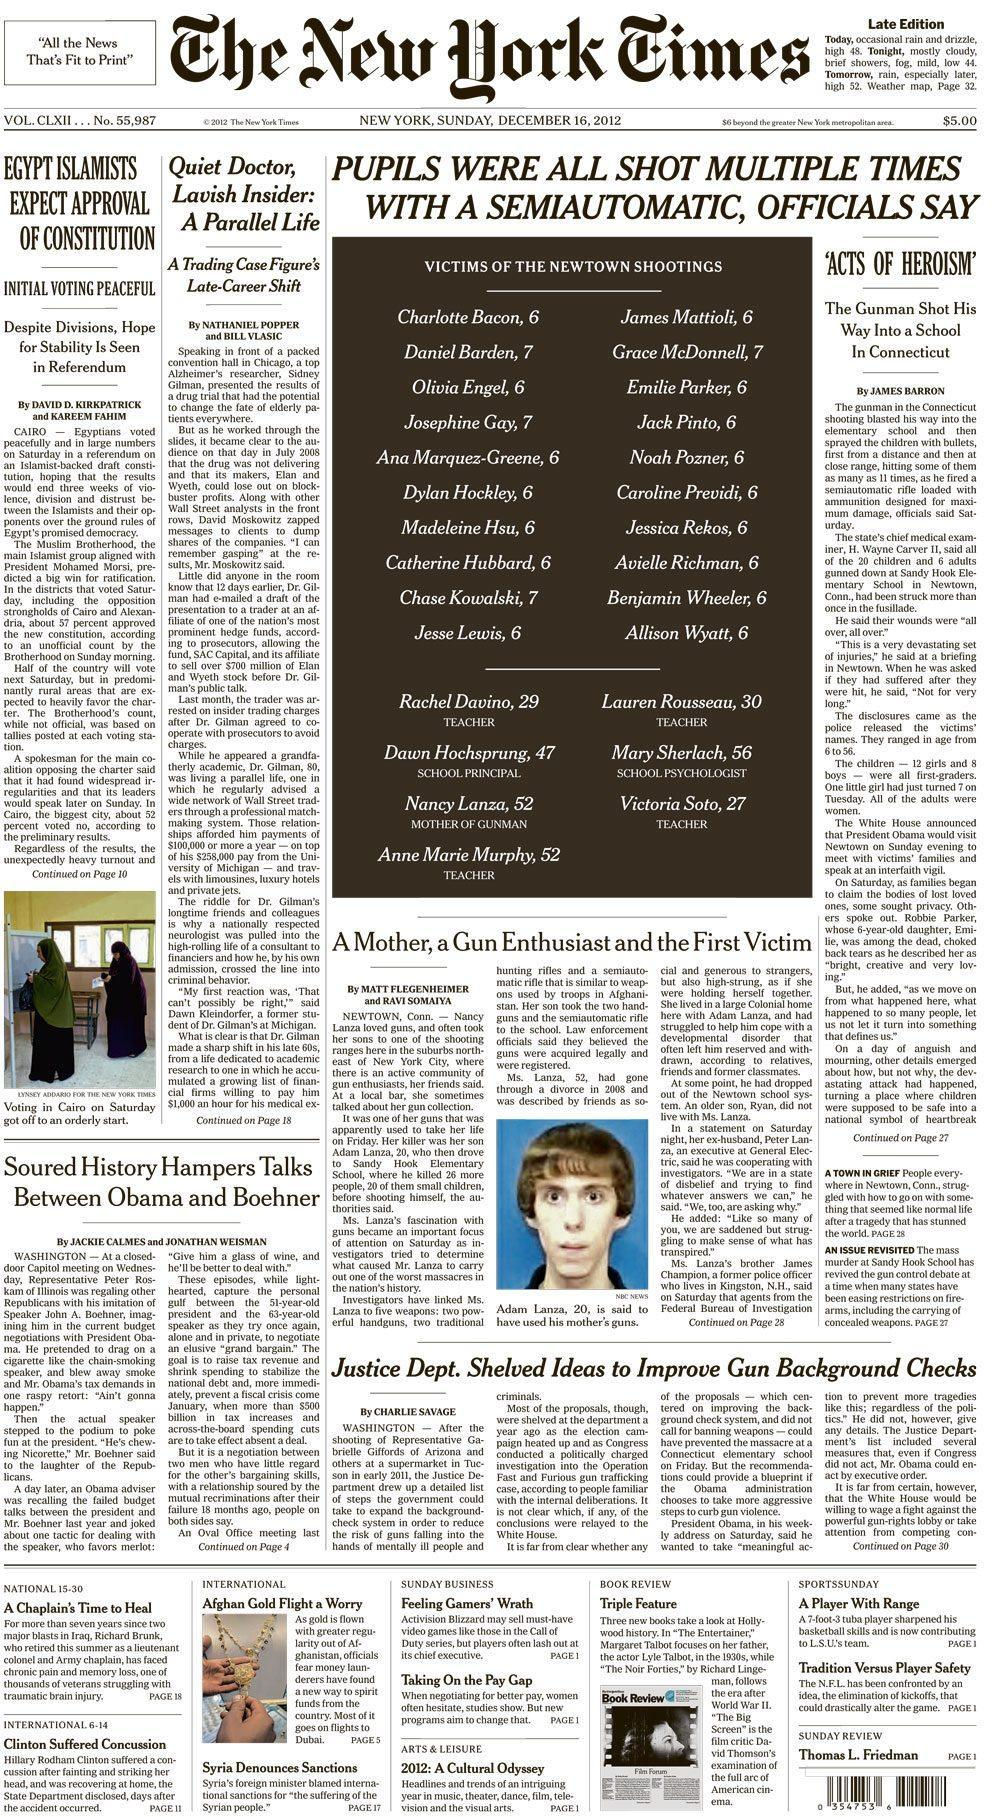 shortformblog:  Sunday's New York Times front page does something the paper of record has rarely, if ever, done before: It leads with a black box rather than an image, with zero photos taking up the top half of the page. It also downplays the suspect significantly. (ht @thomaskaplan)  I have heard that behavioral psychologists advocate that in order to prevent glorification of mass violence to potential perpetrators, news agencies need to let  the affected communities grieve in private and limit attention given to the shooter.  Television news coverage has been a theatre of grotesque exploitation of Newtown's pain this weekend; I'm glad the New York Times is taking a different approach.